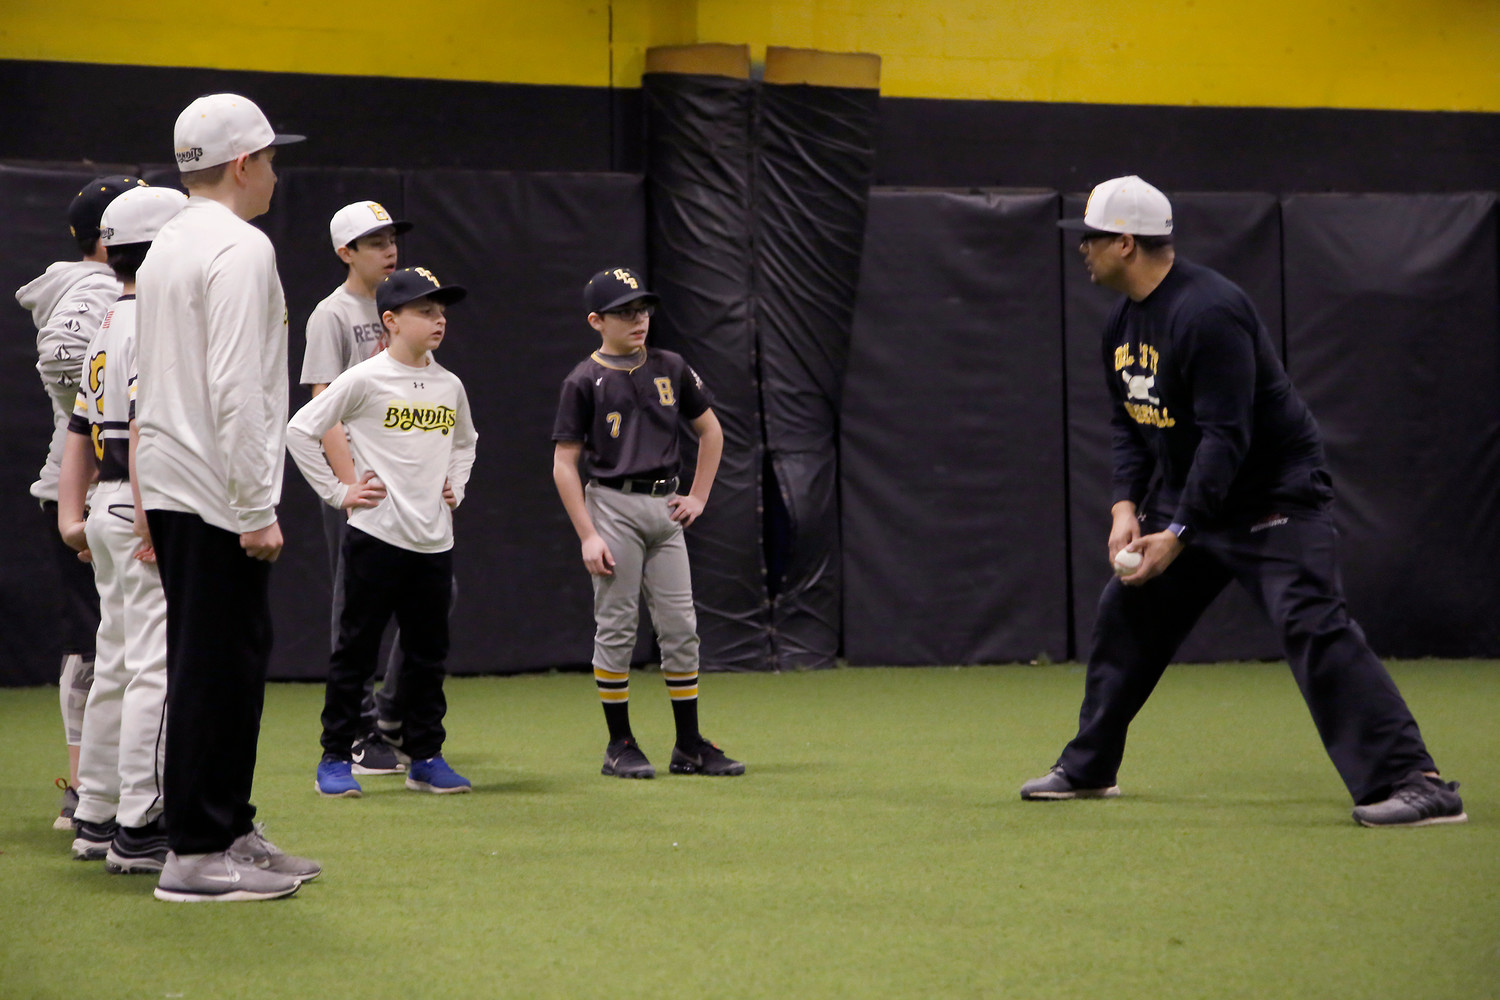 Coach Christian Paulino shows the 12-year old leaguers the proper way of handling the infield.